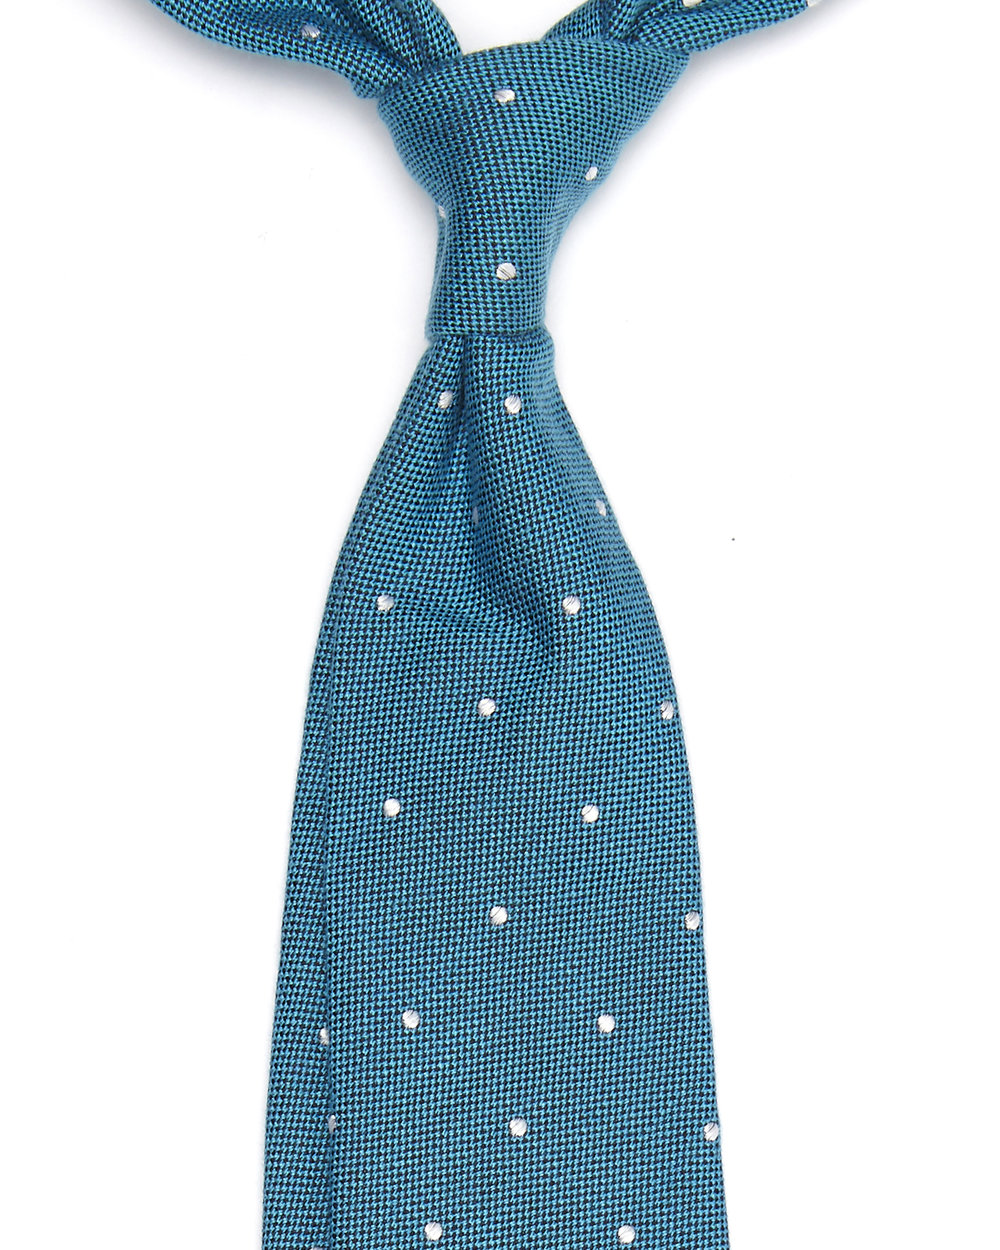 Shaun Gordon Montague Dot Tie.